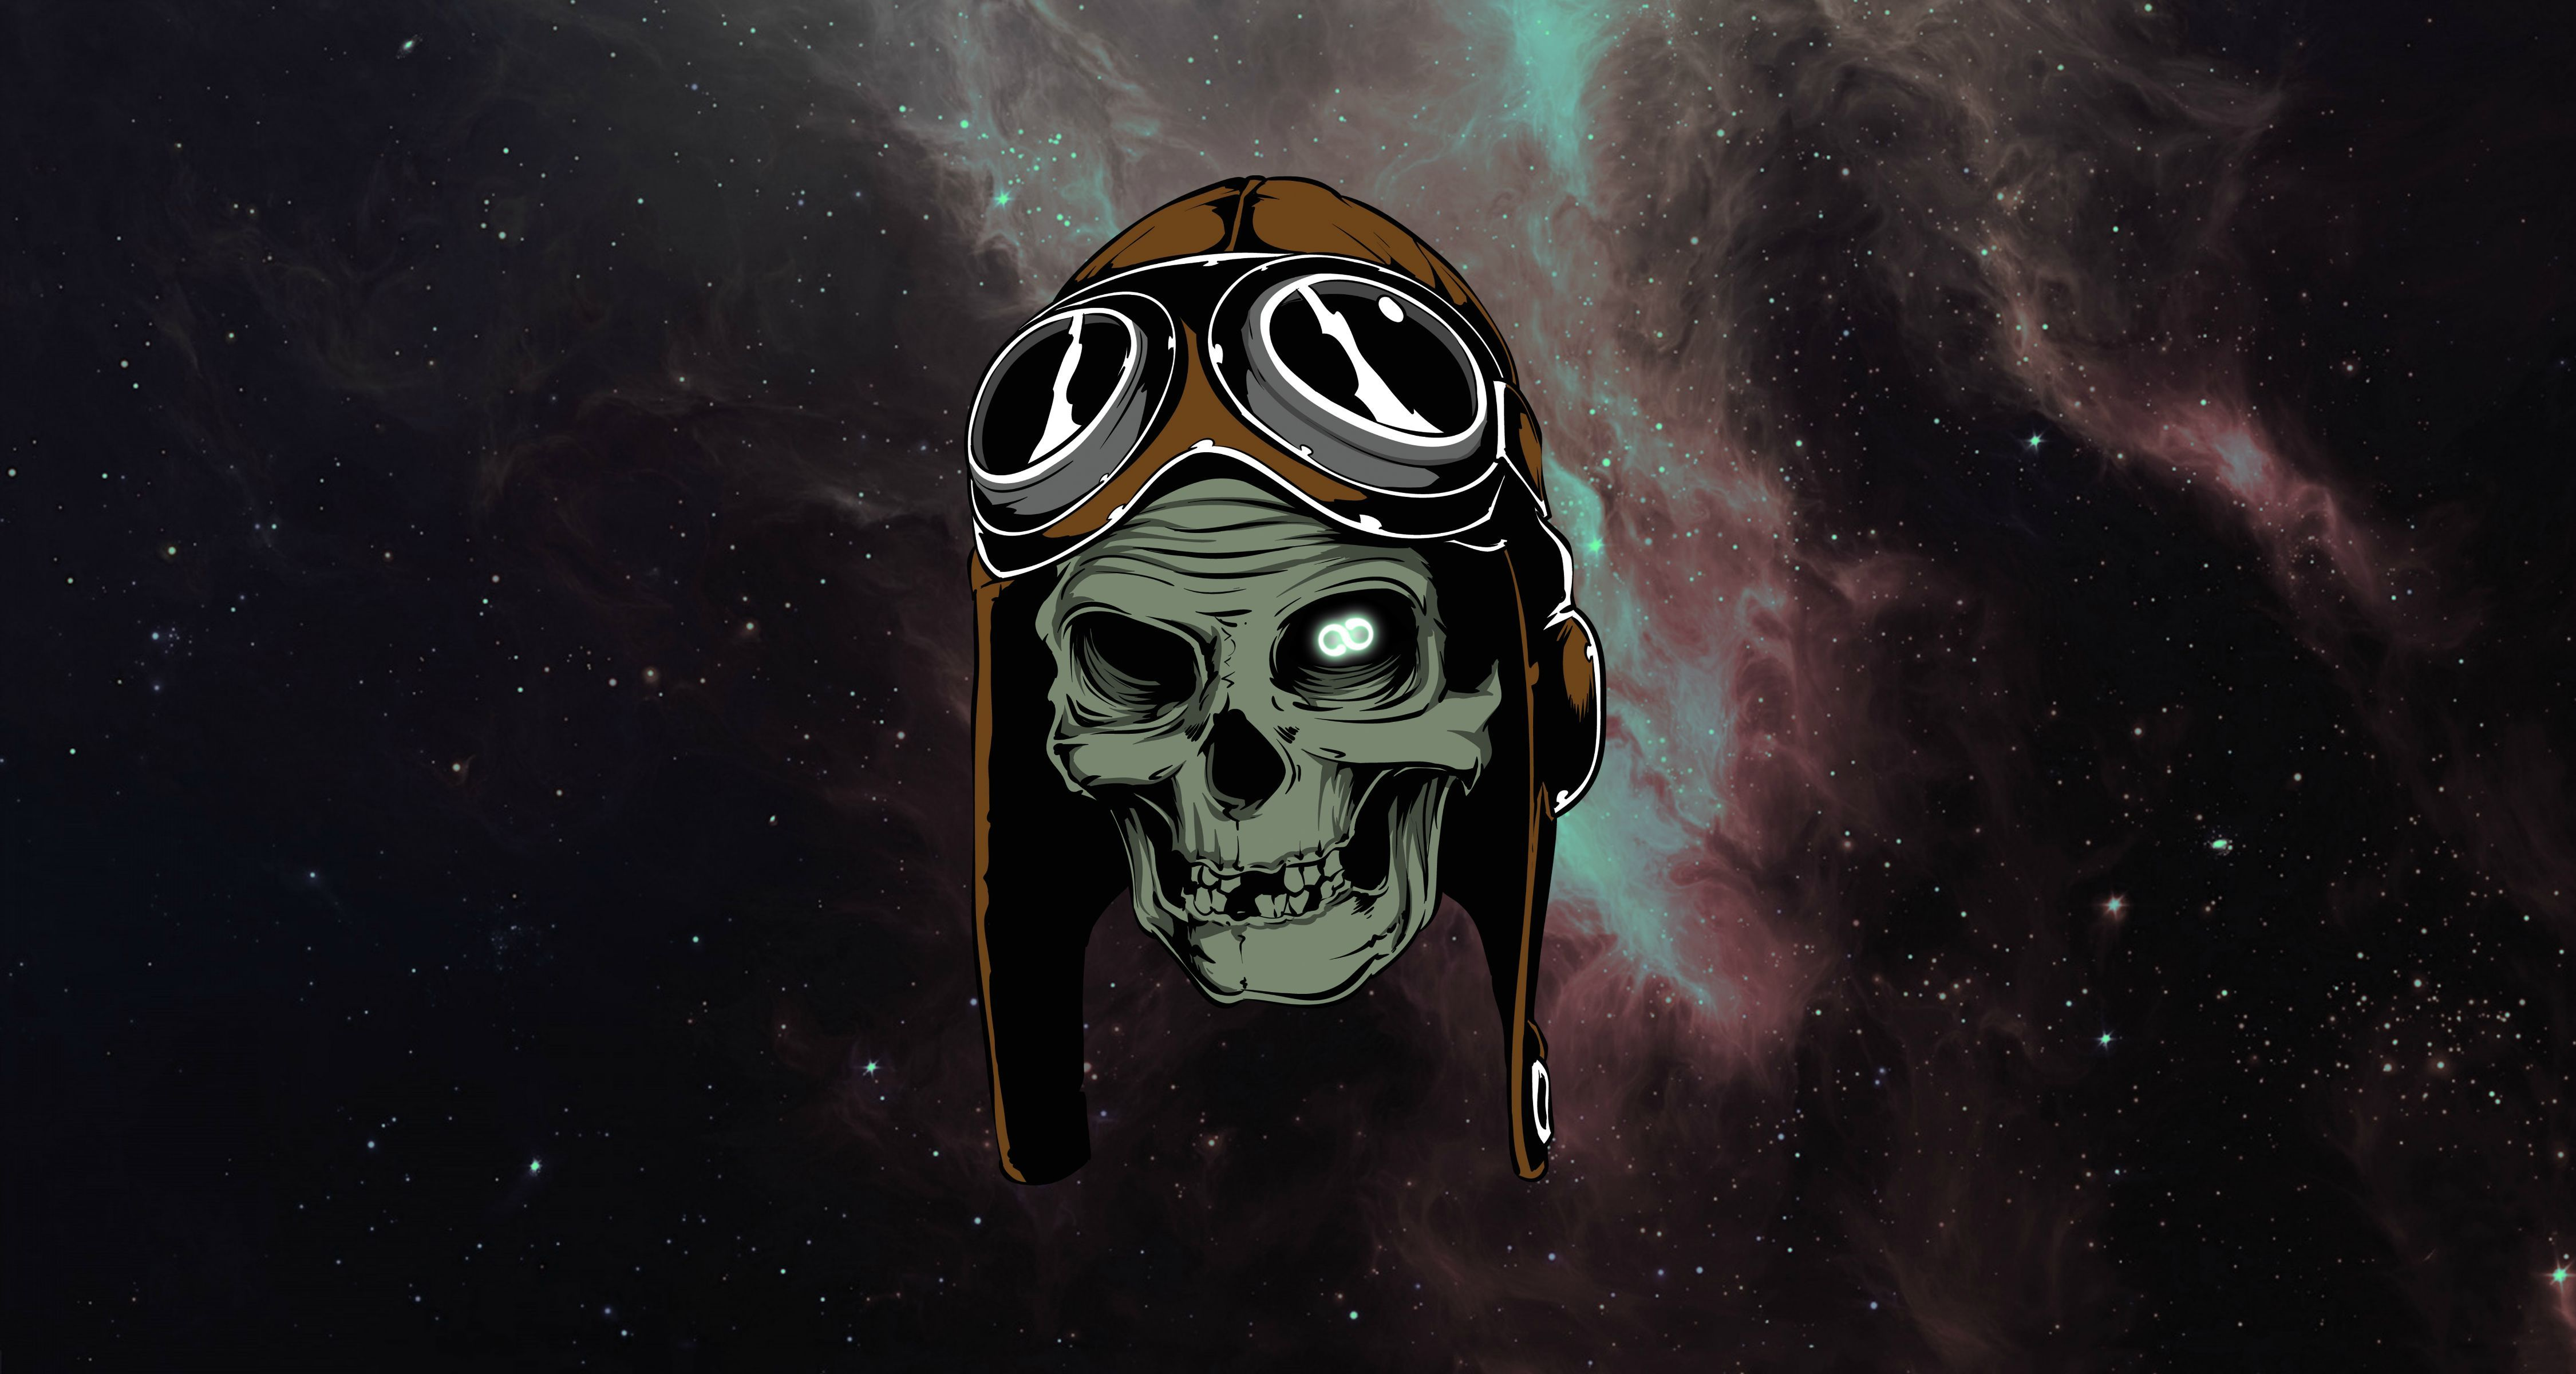 Infinity 7500x4000 Inspired By The B 17 Segment Of The Heavy Metal Movie R Wallpapers Skull Heavy Metal Movie Skull Wallpaper